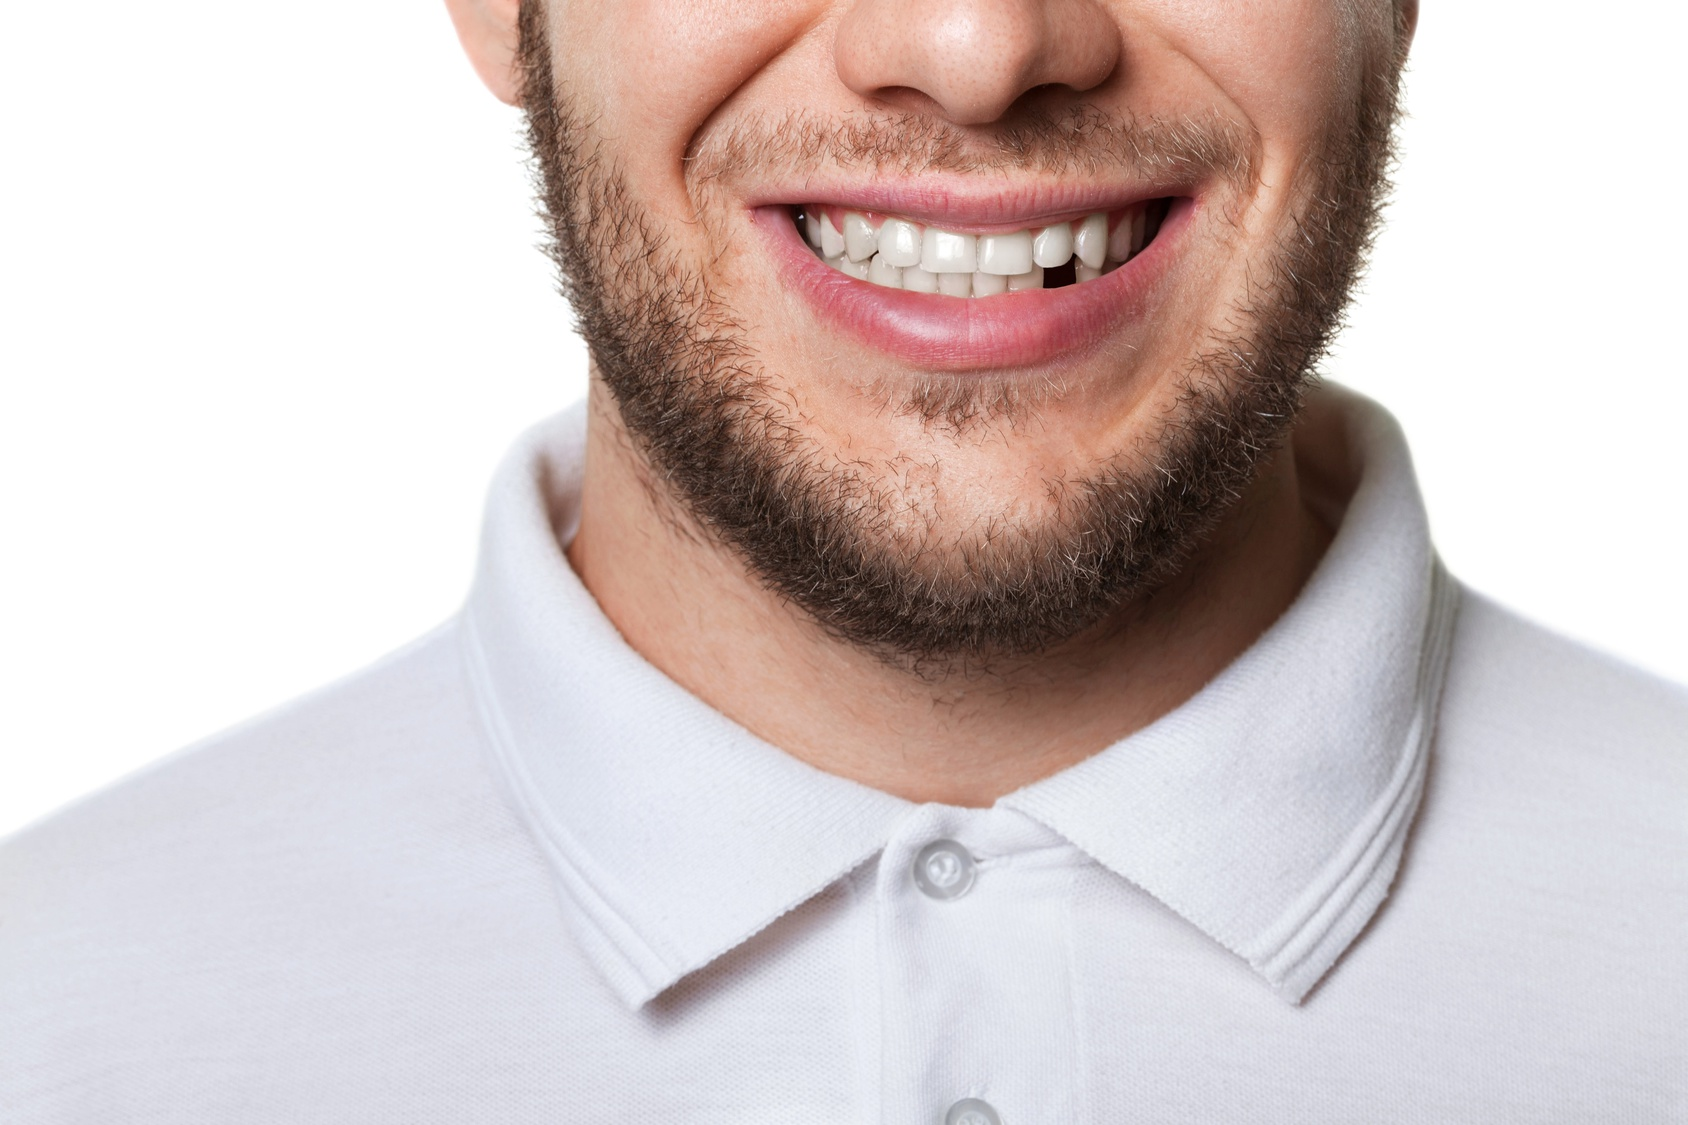 man smiling with a missing teeth | dental implant in York